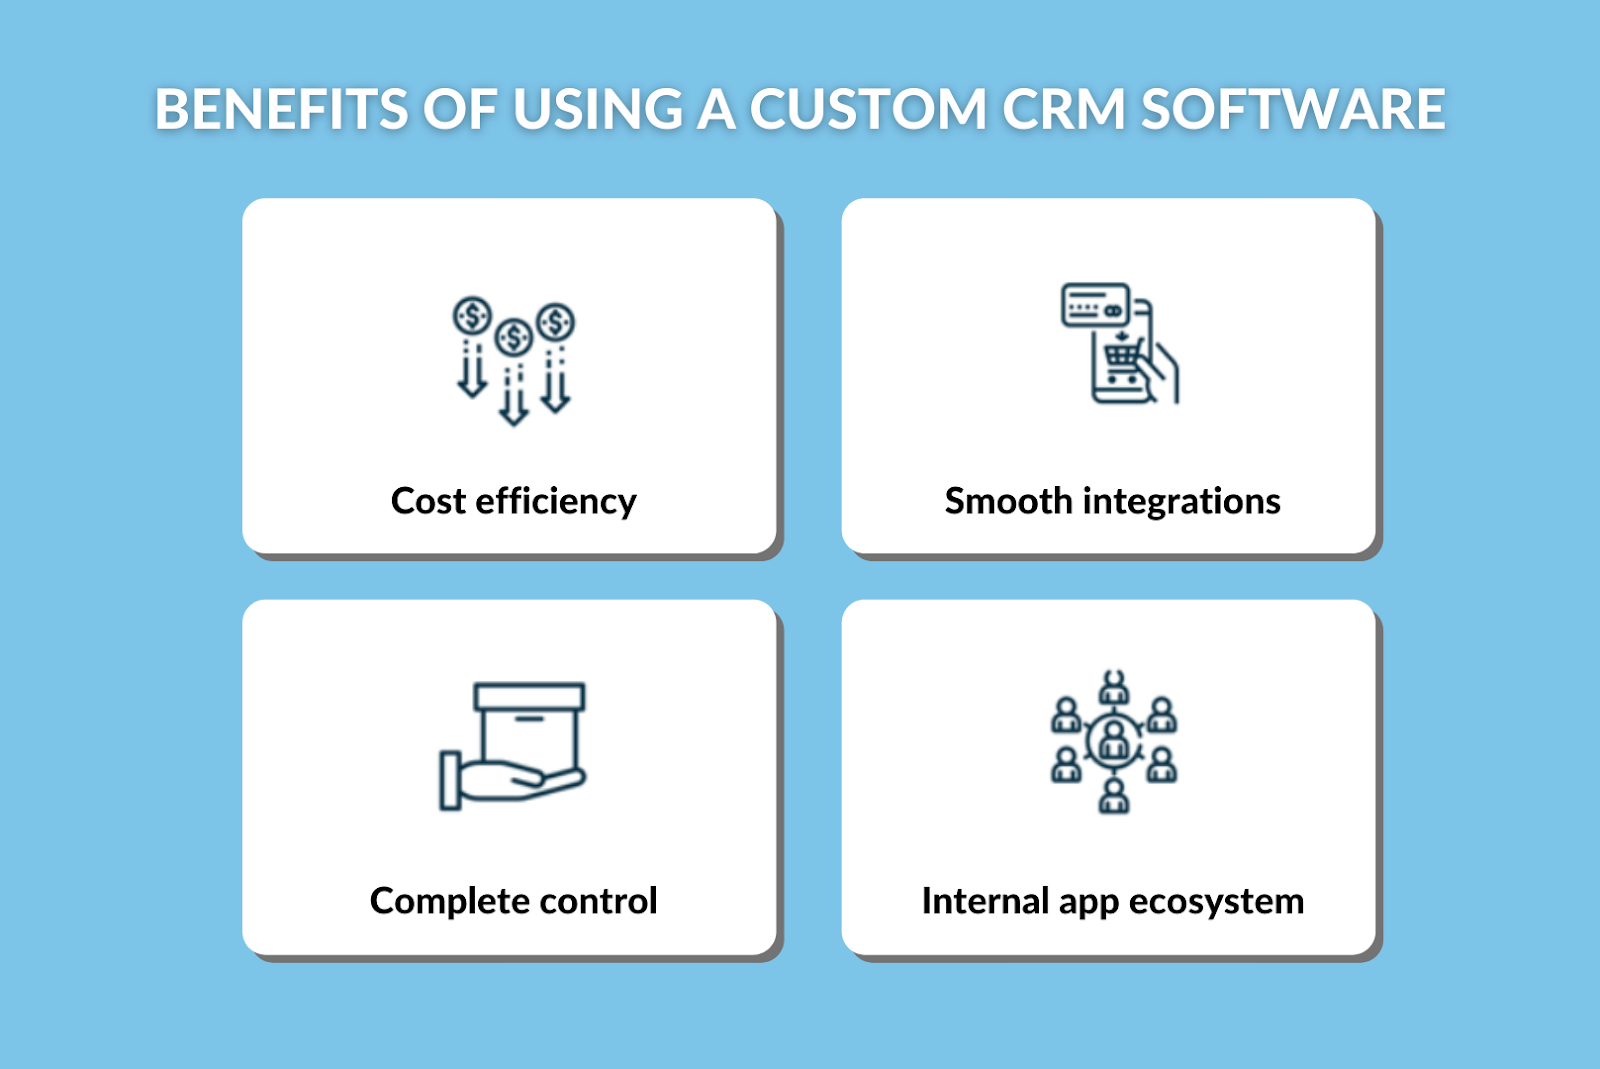 Benefits of using a custom crm software